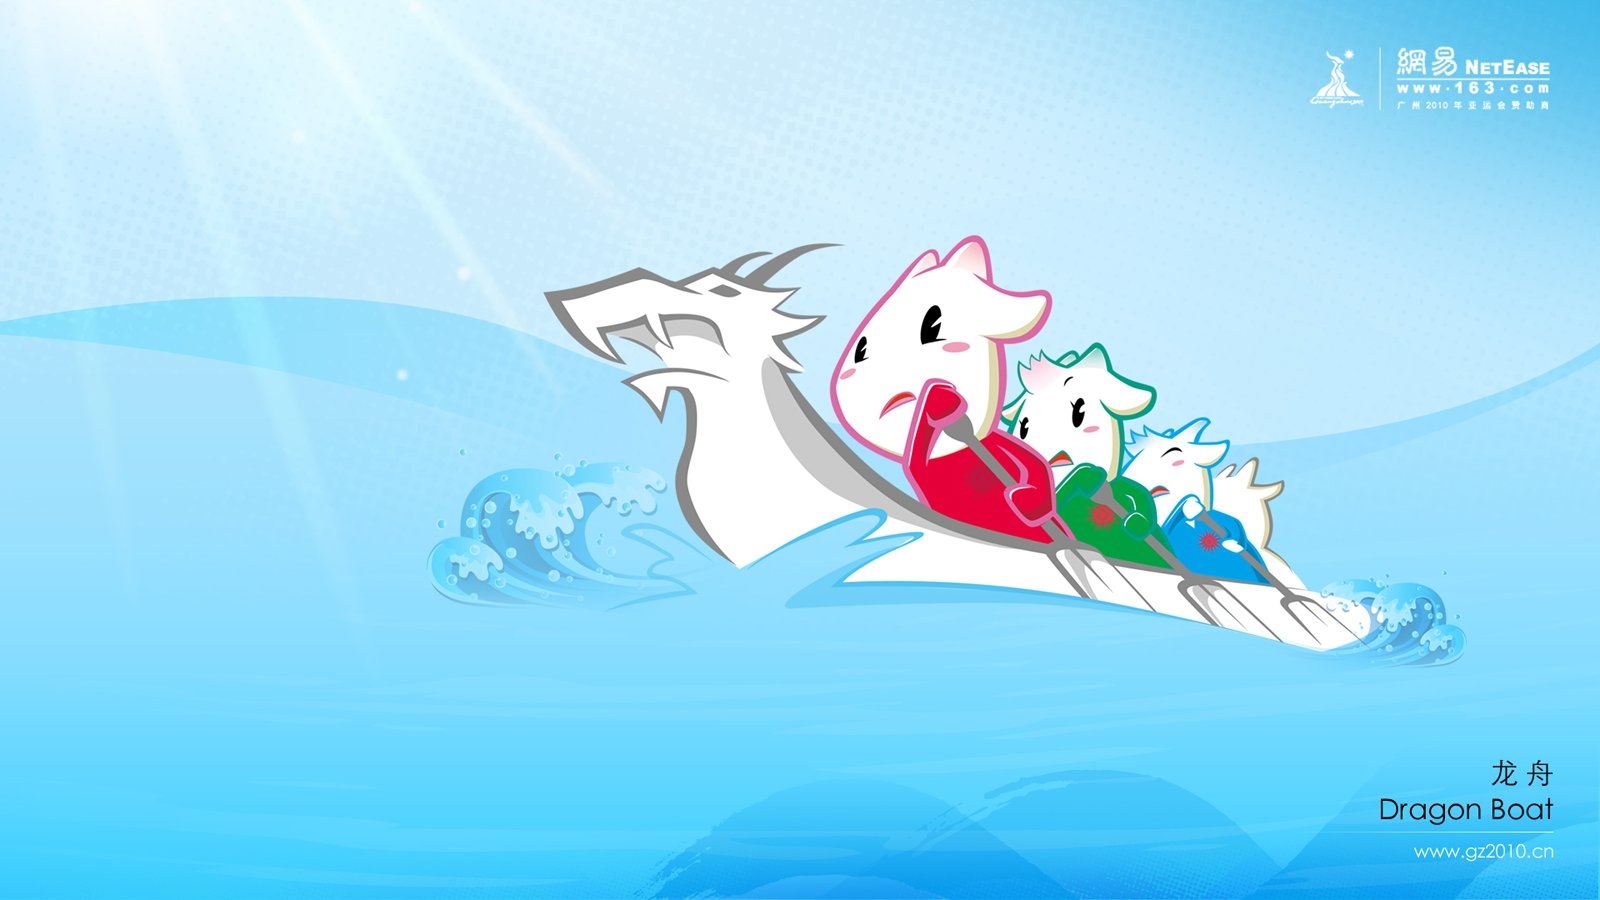 Game Dragon Boat Cartoon